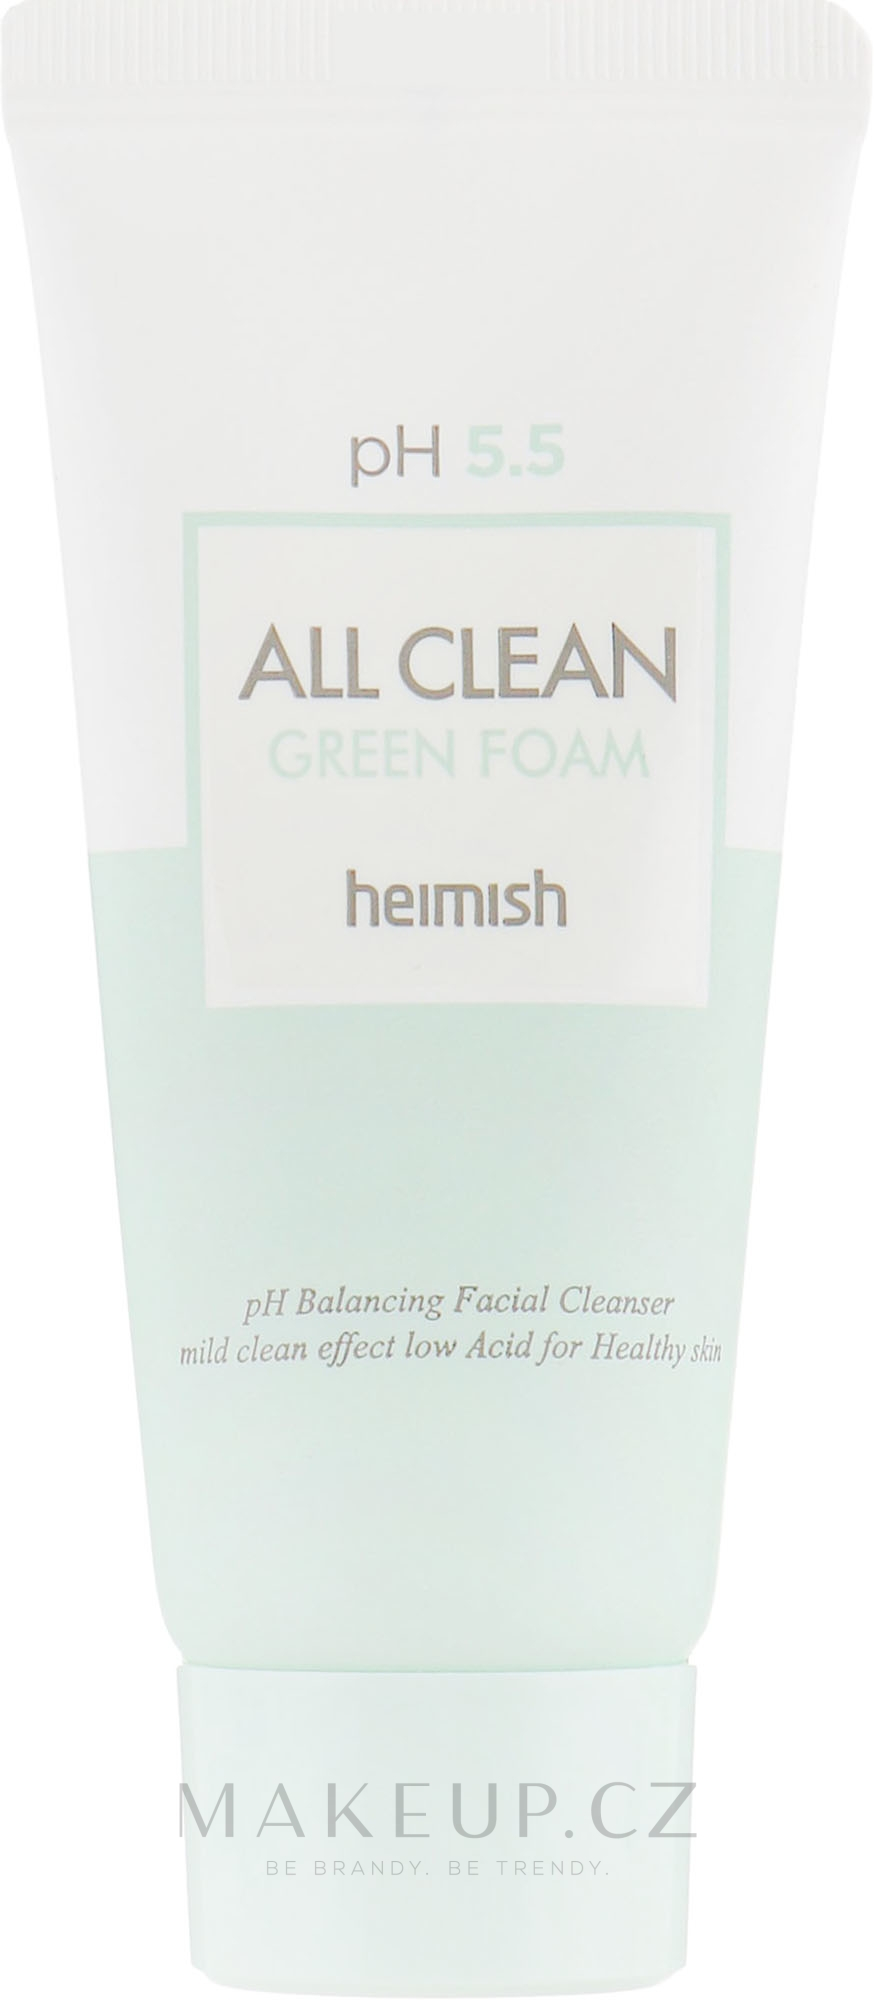 Čistící pěna na obličej - Heimish All Clean Green Foam pH 5.5 (mini) — foto 30 ml